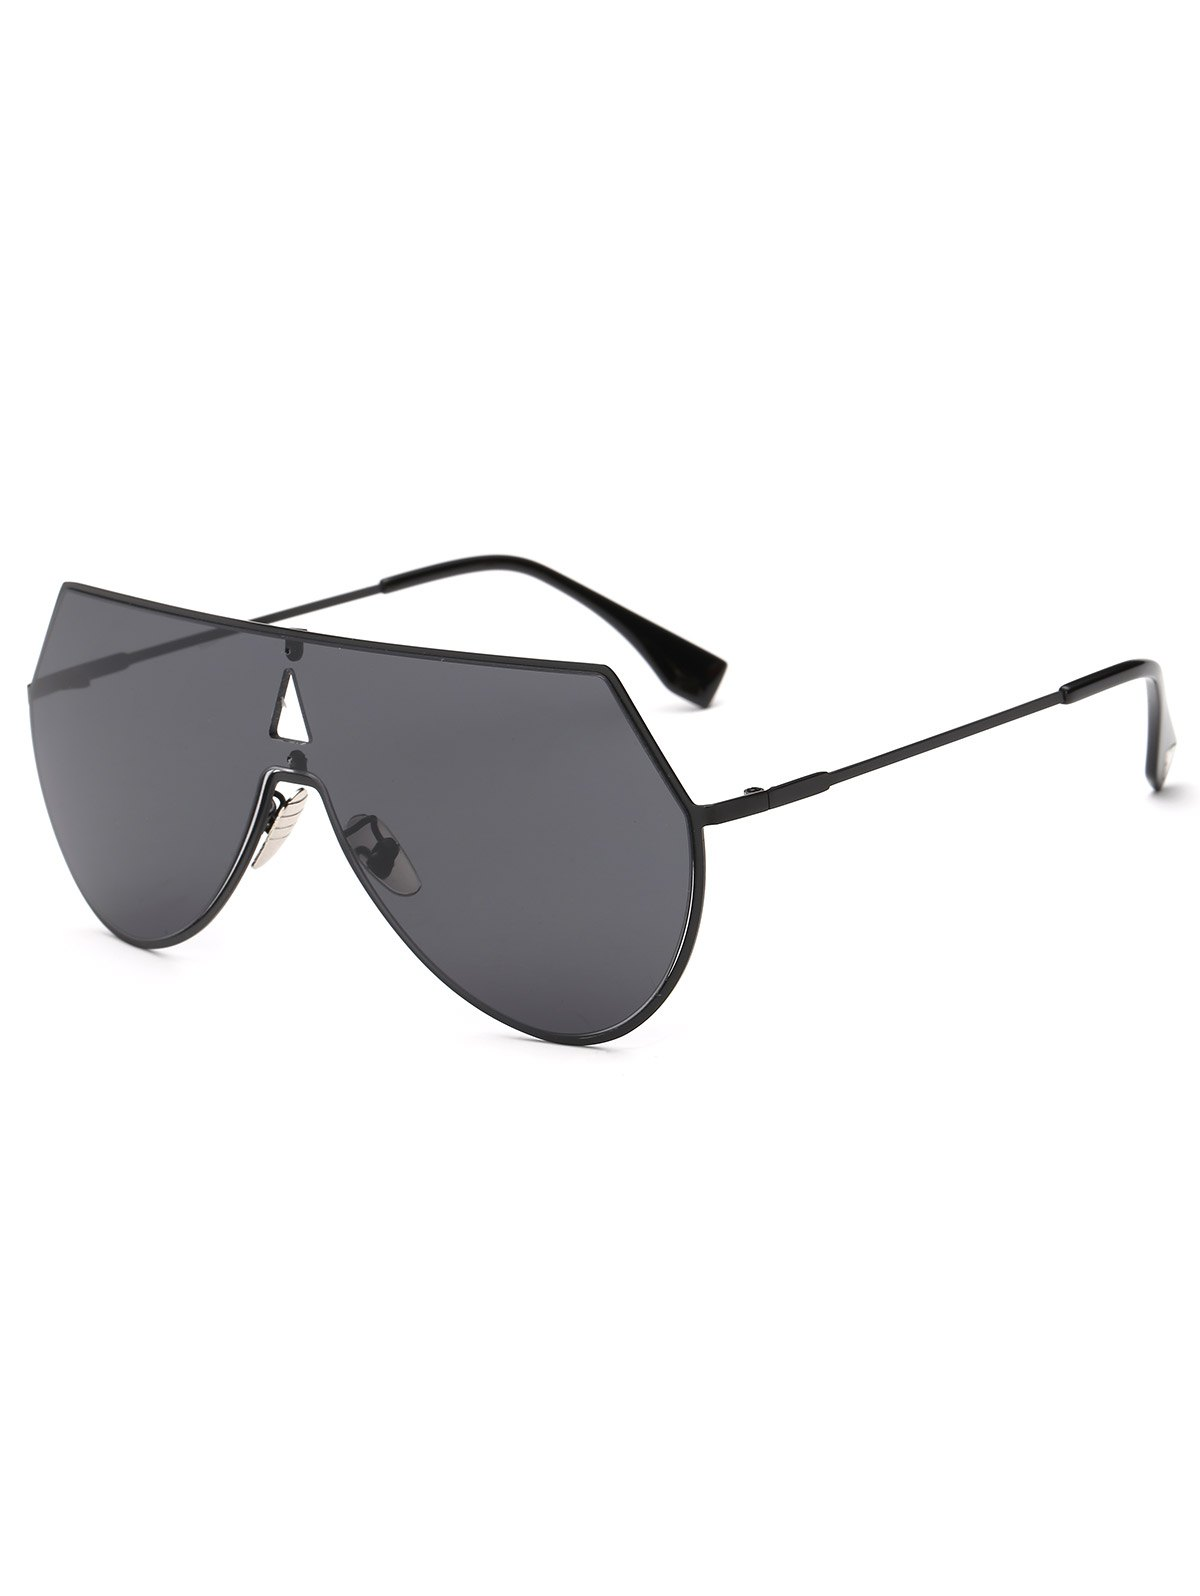 Triangle Shield Sunglasses